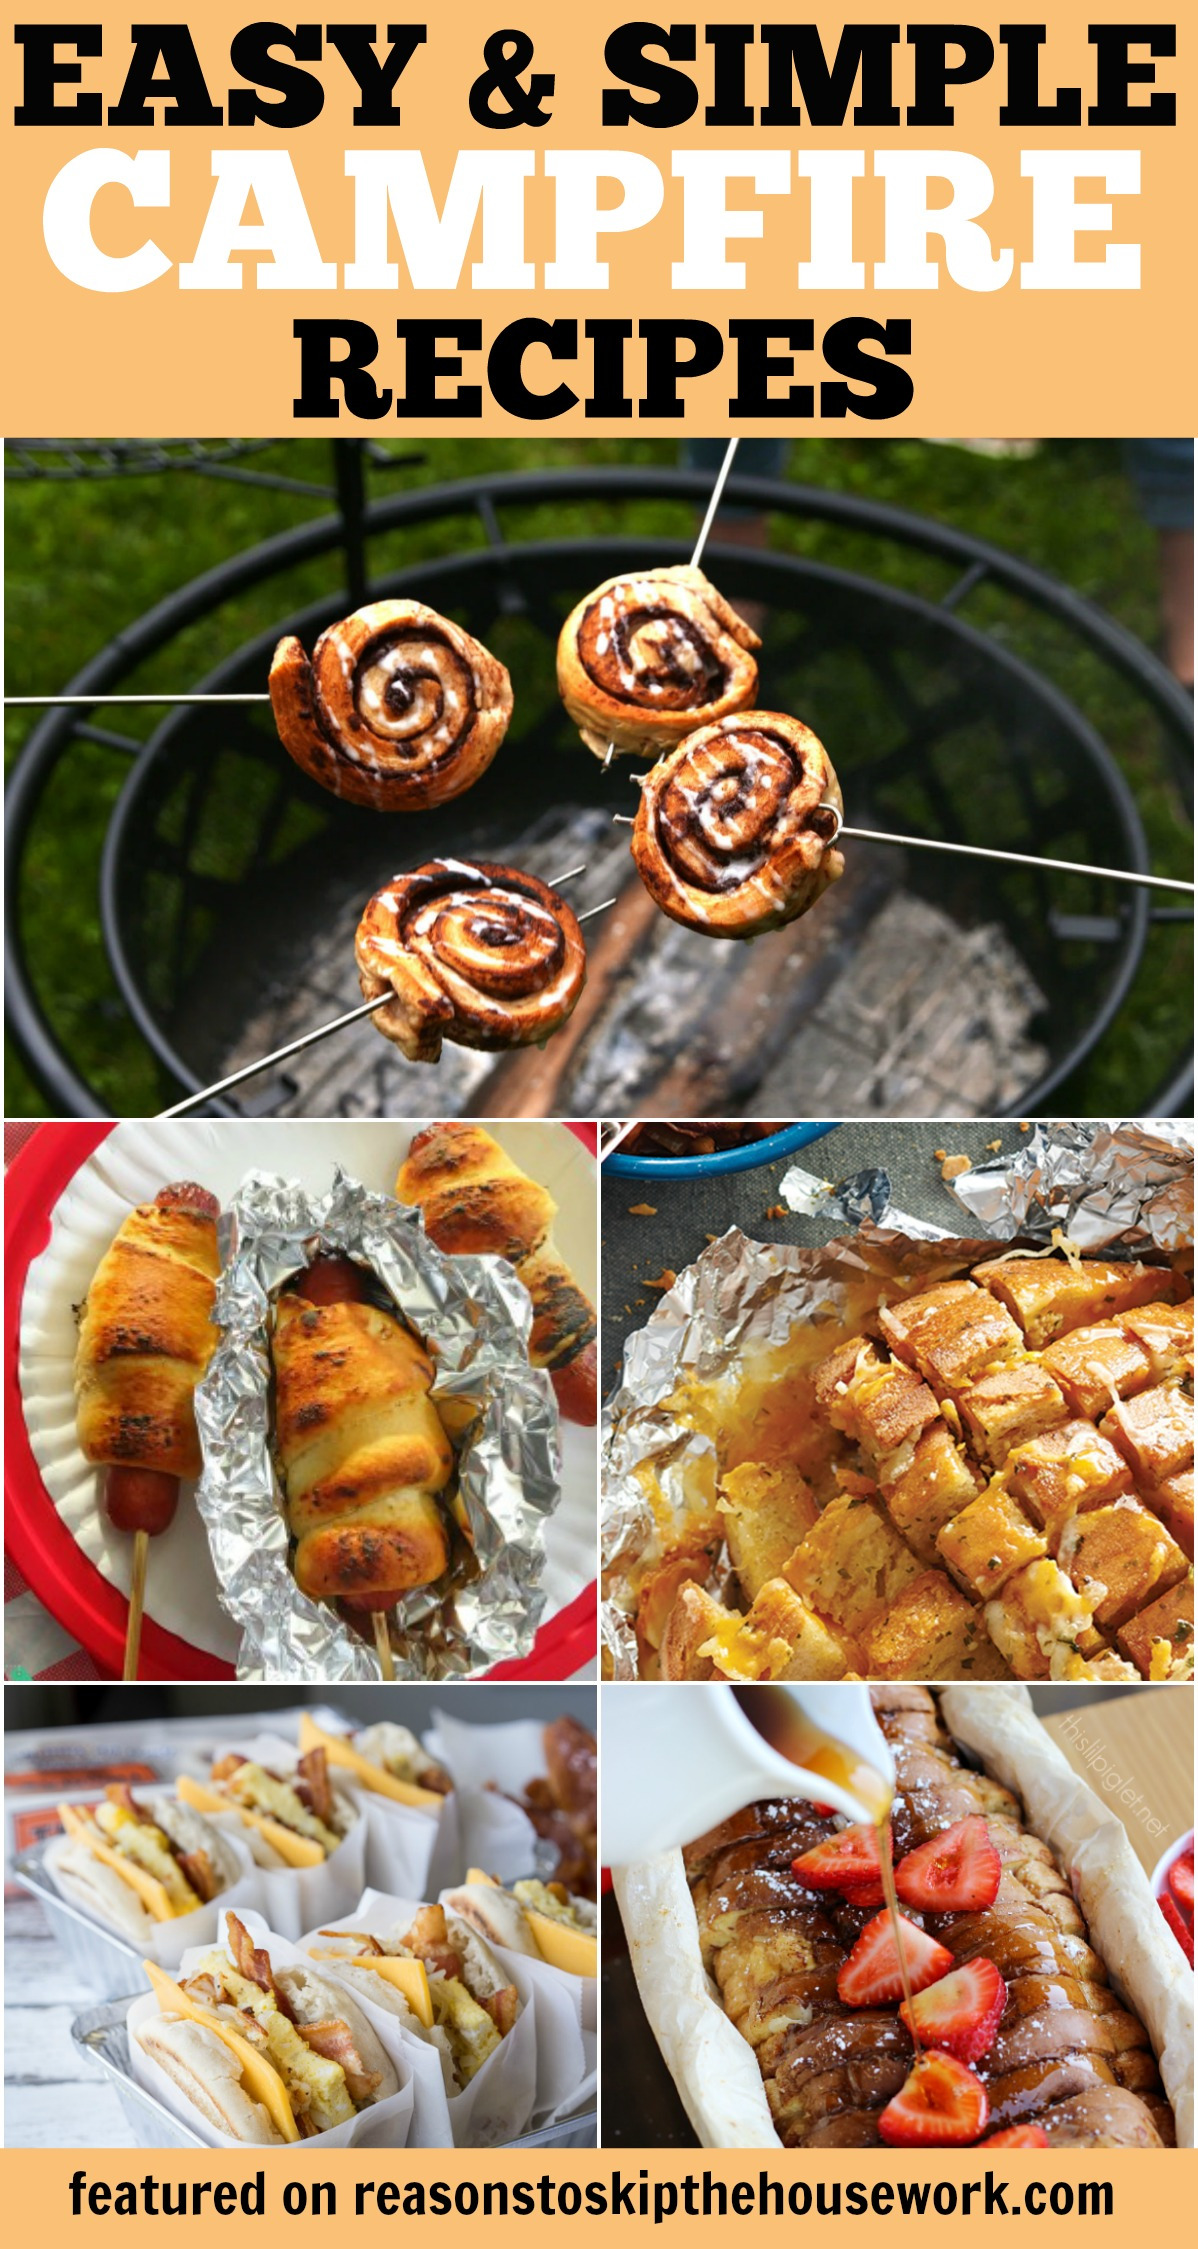 Camping Recipes that are simple, easy to pack, and delicious!  You'll want these for your next camping trip!